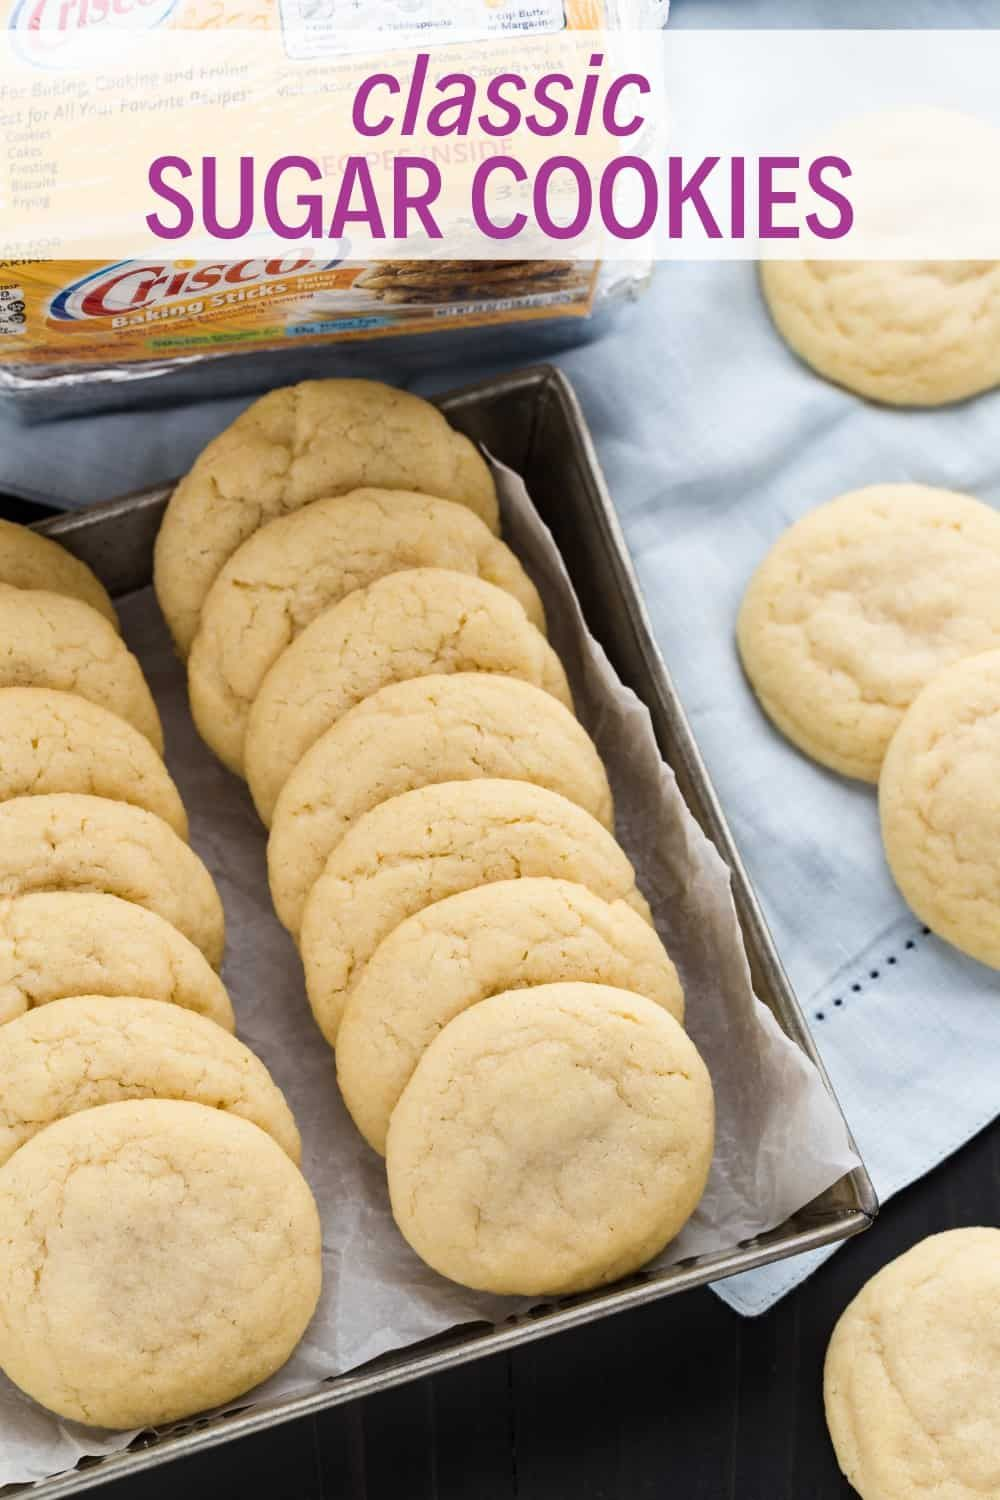 Classic Sugar Cookies Thick, light-textured Classic Sugar Cookies that are made with shortening instead of butter.